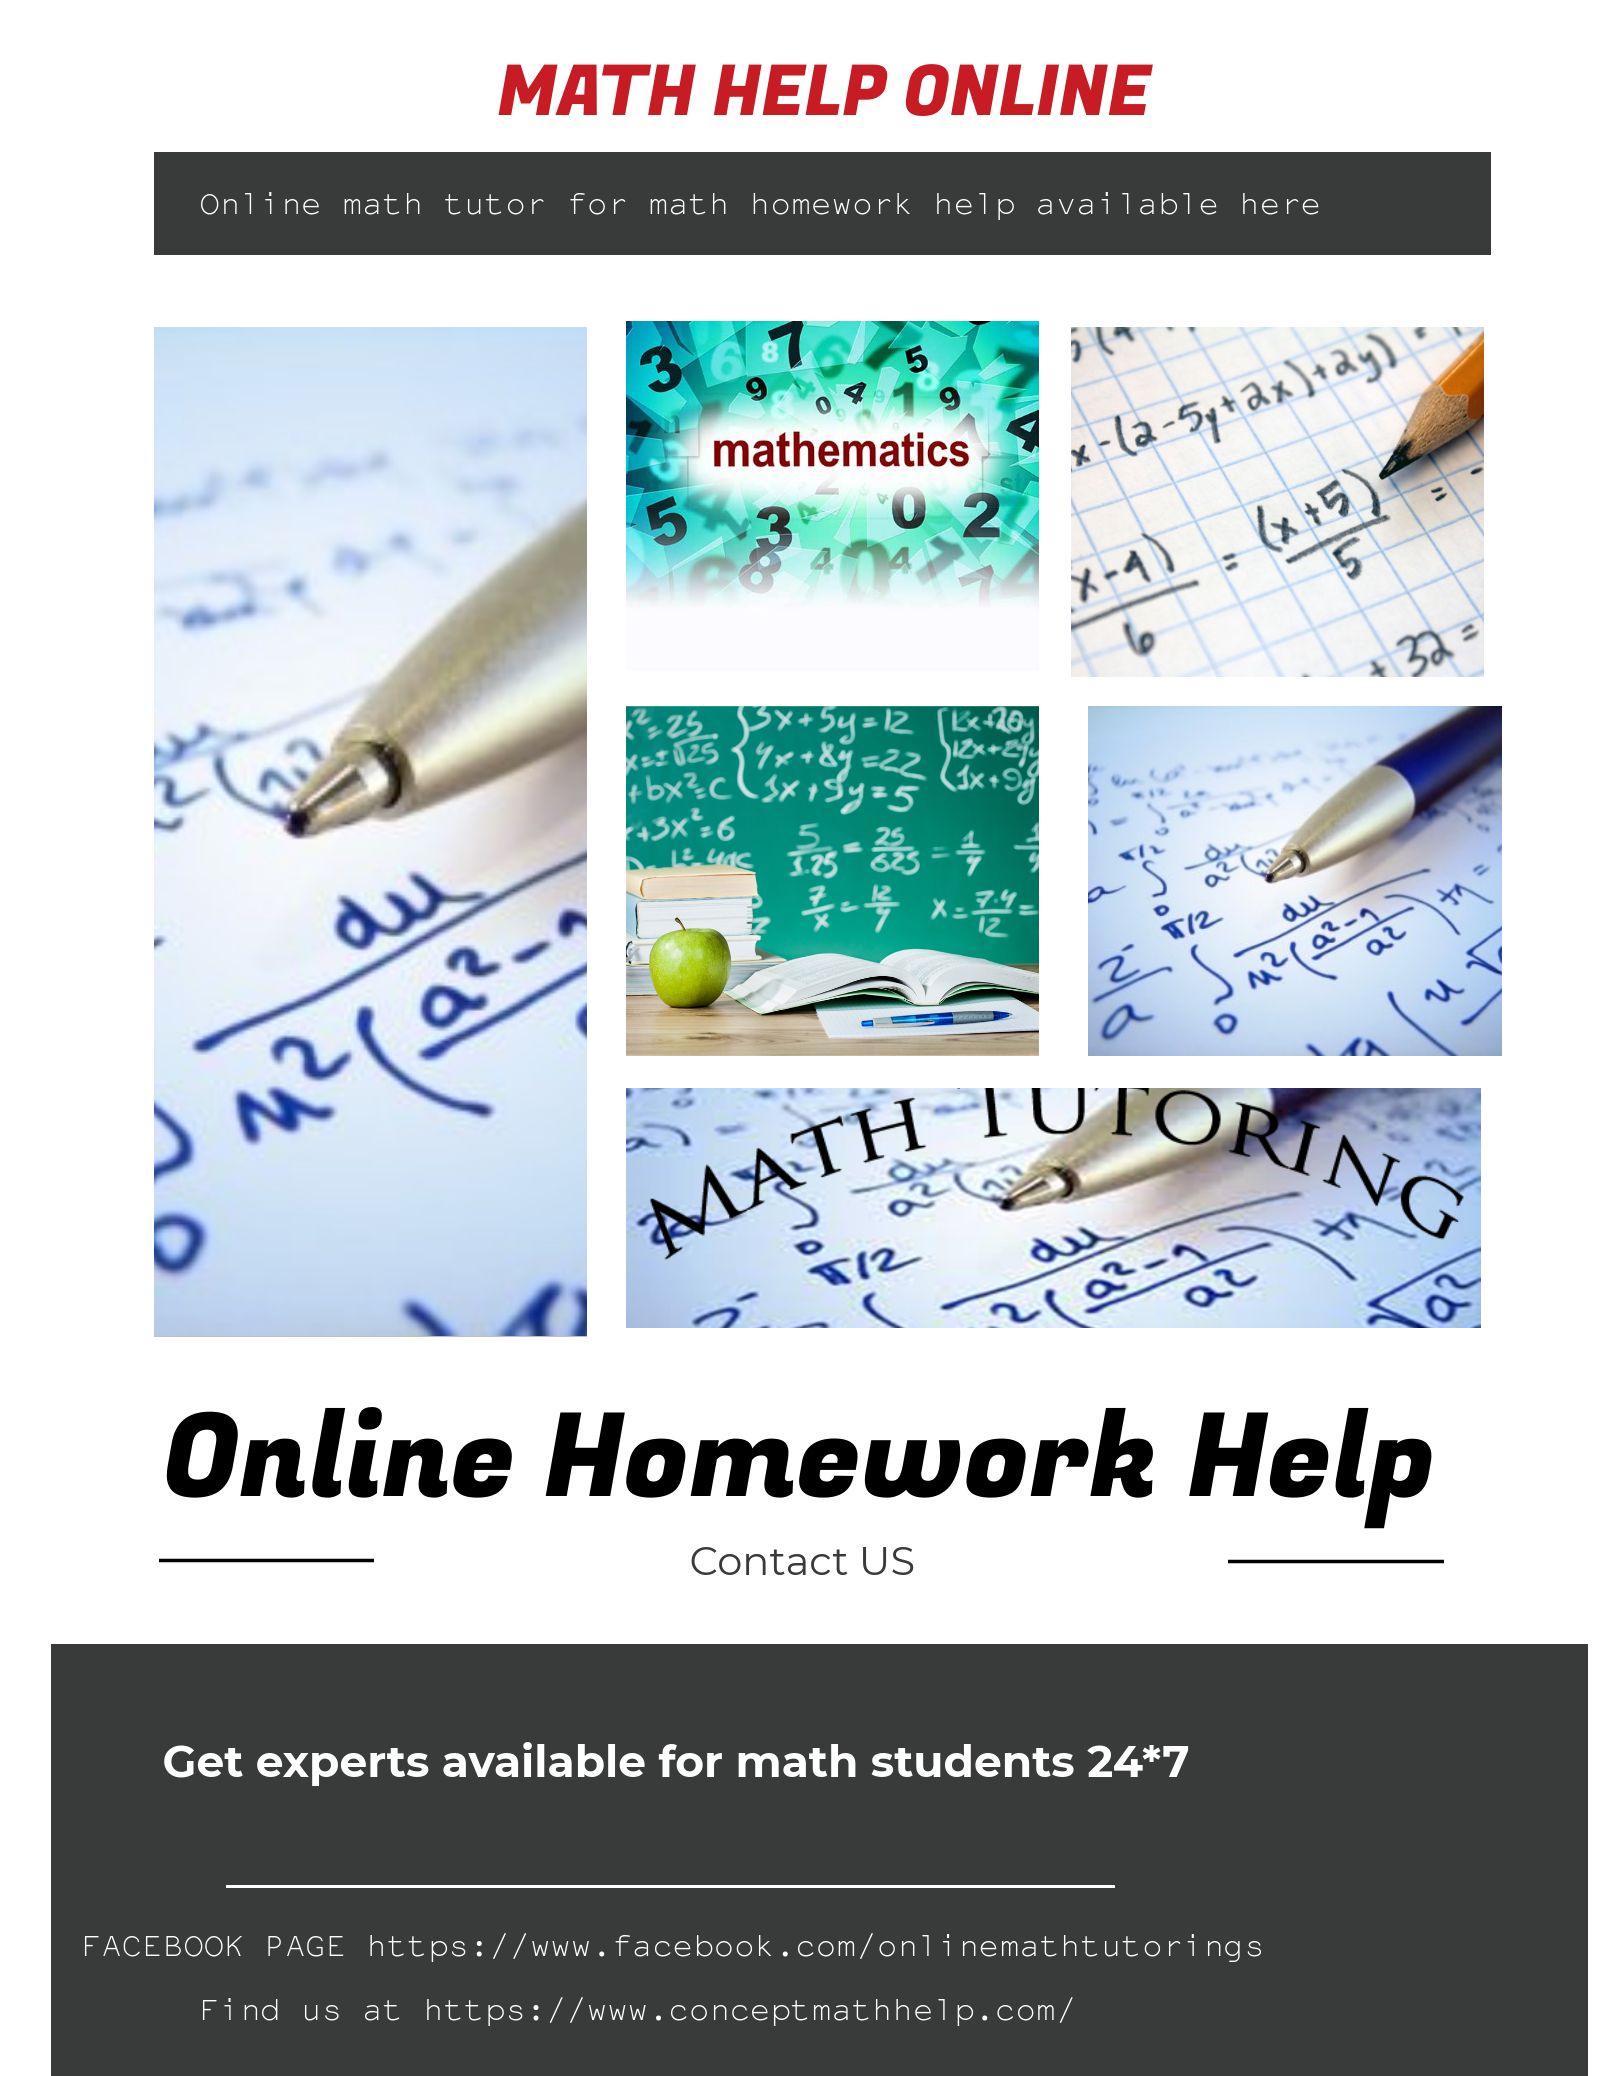 Instant experts advice for all kinds of math problems for students